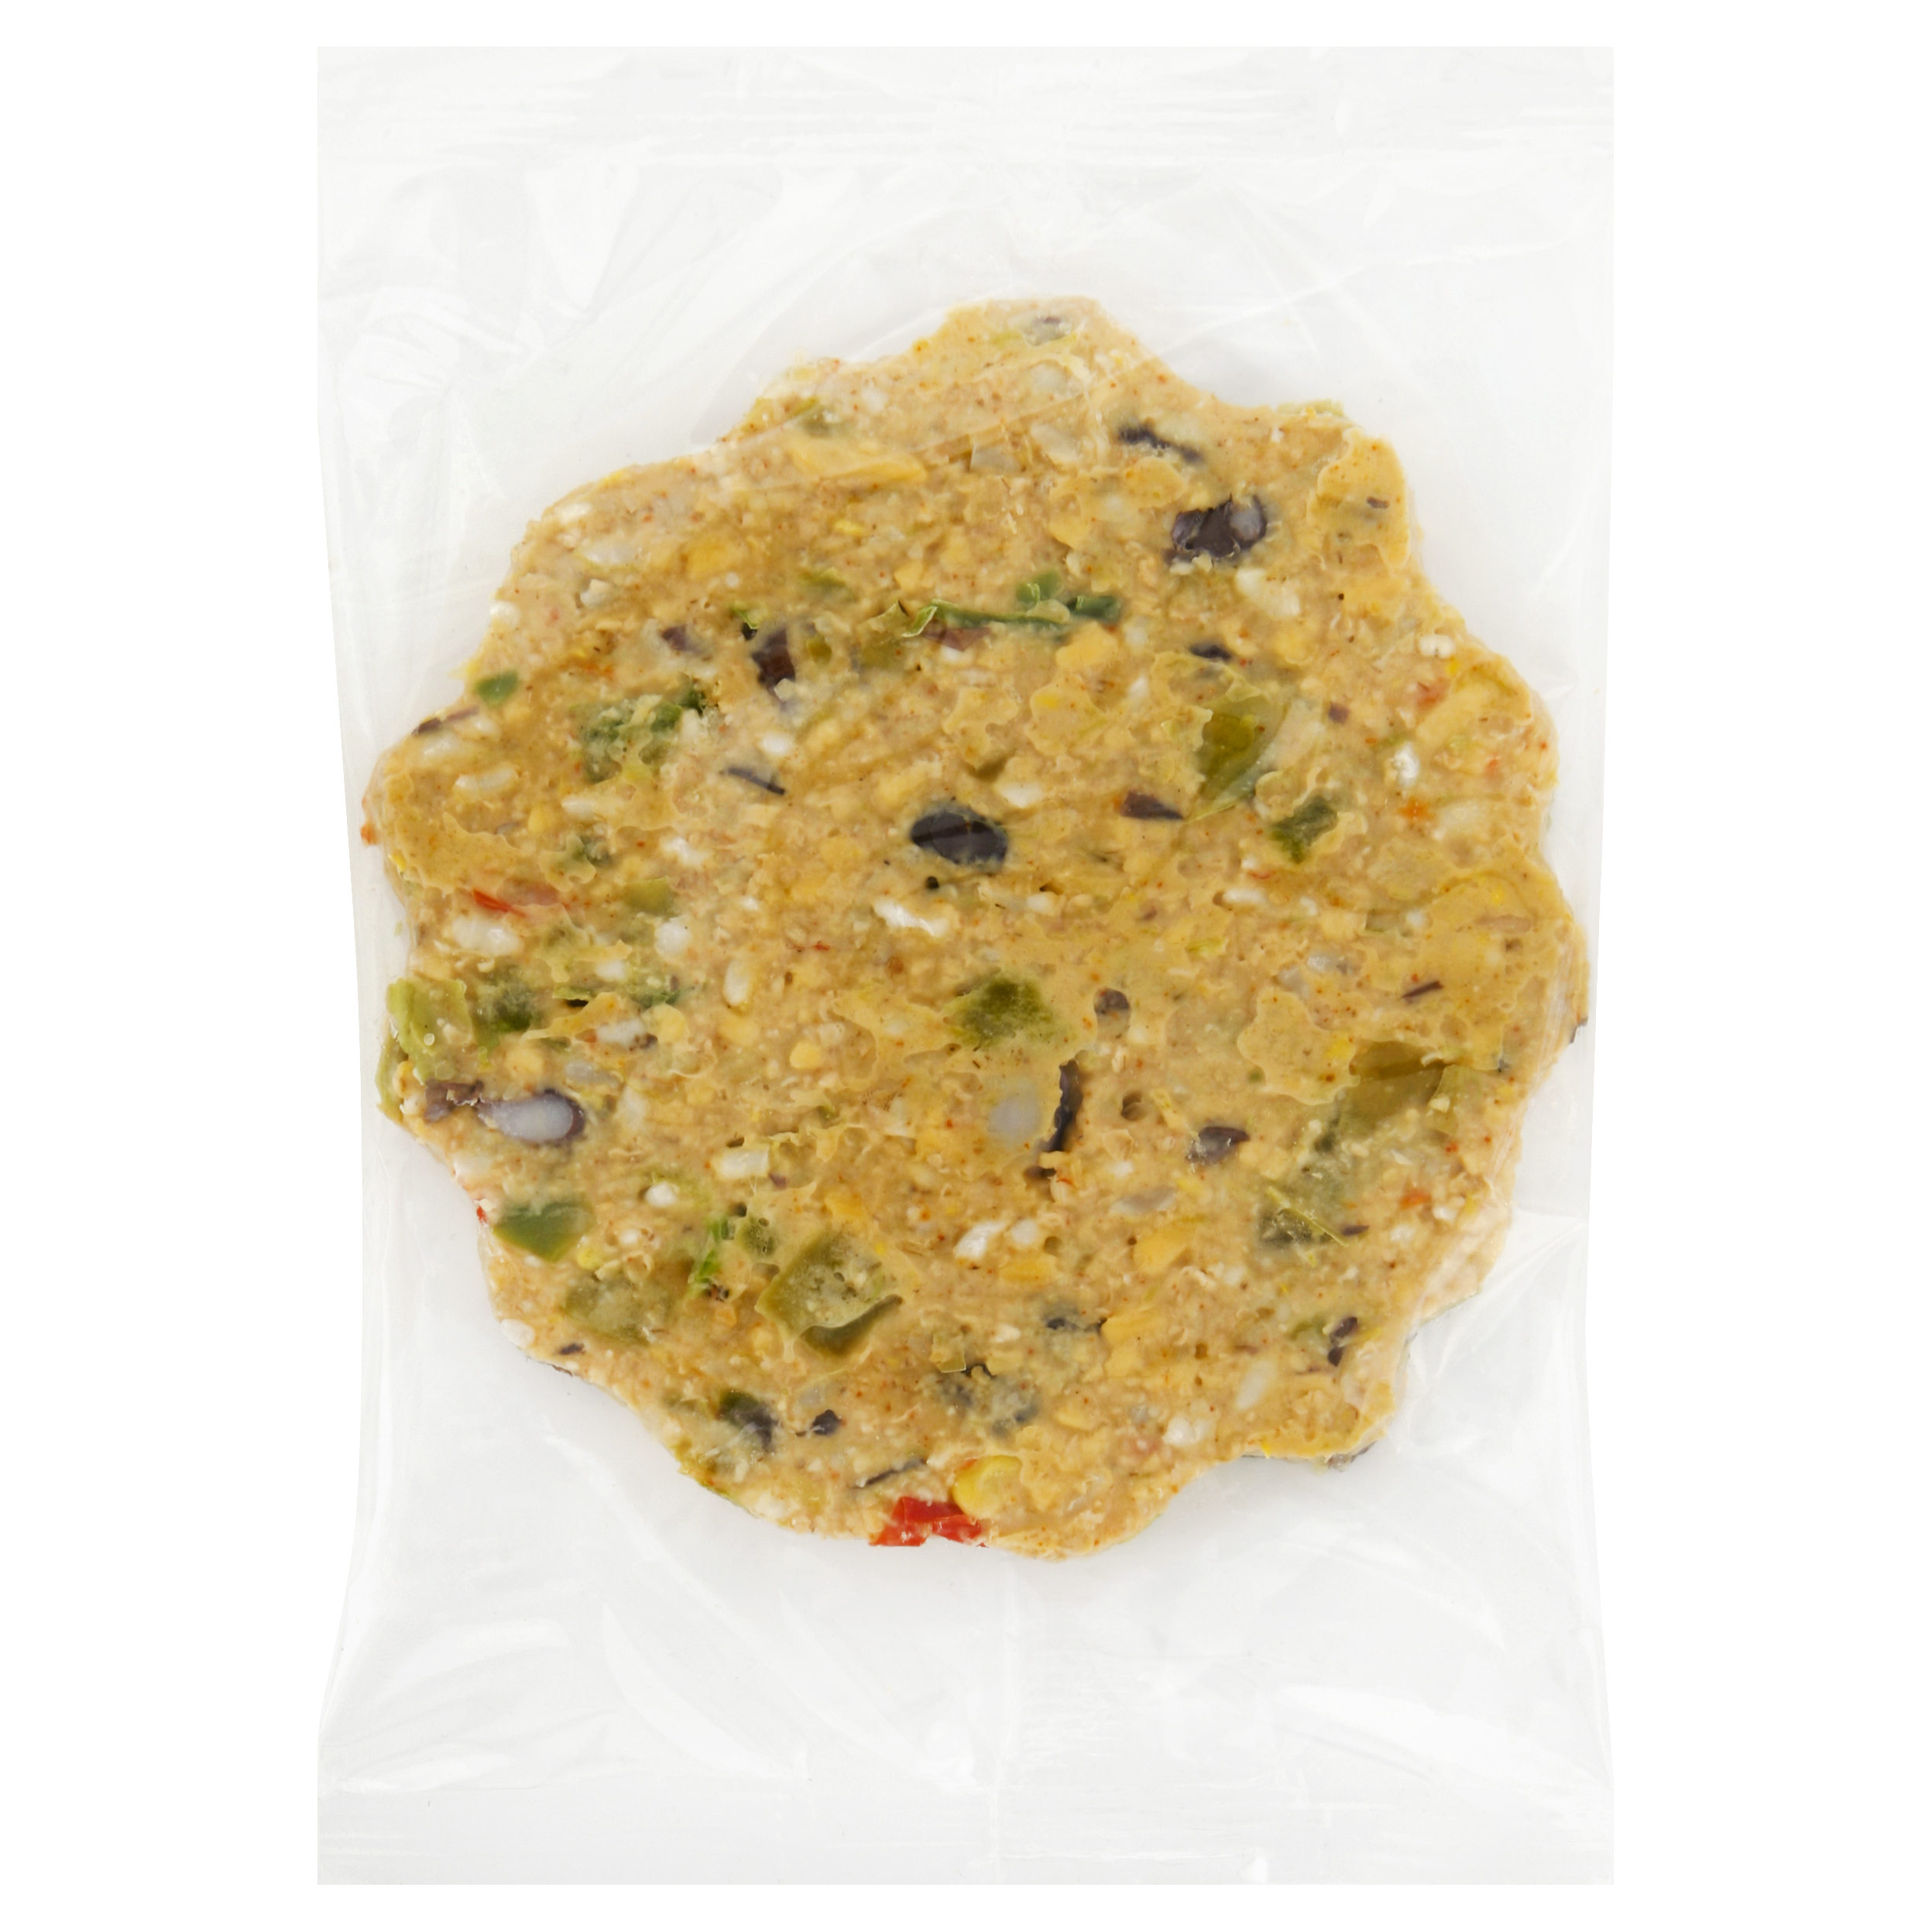 Boca Essentials Chile Black Bean Burger, 4 oz. image